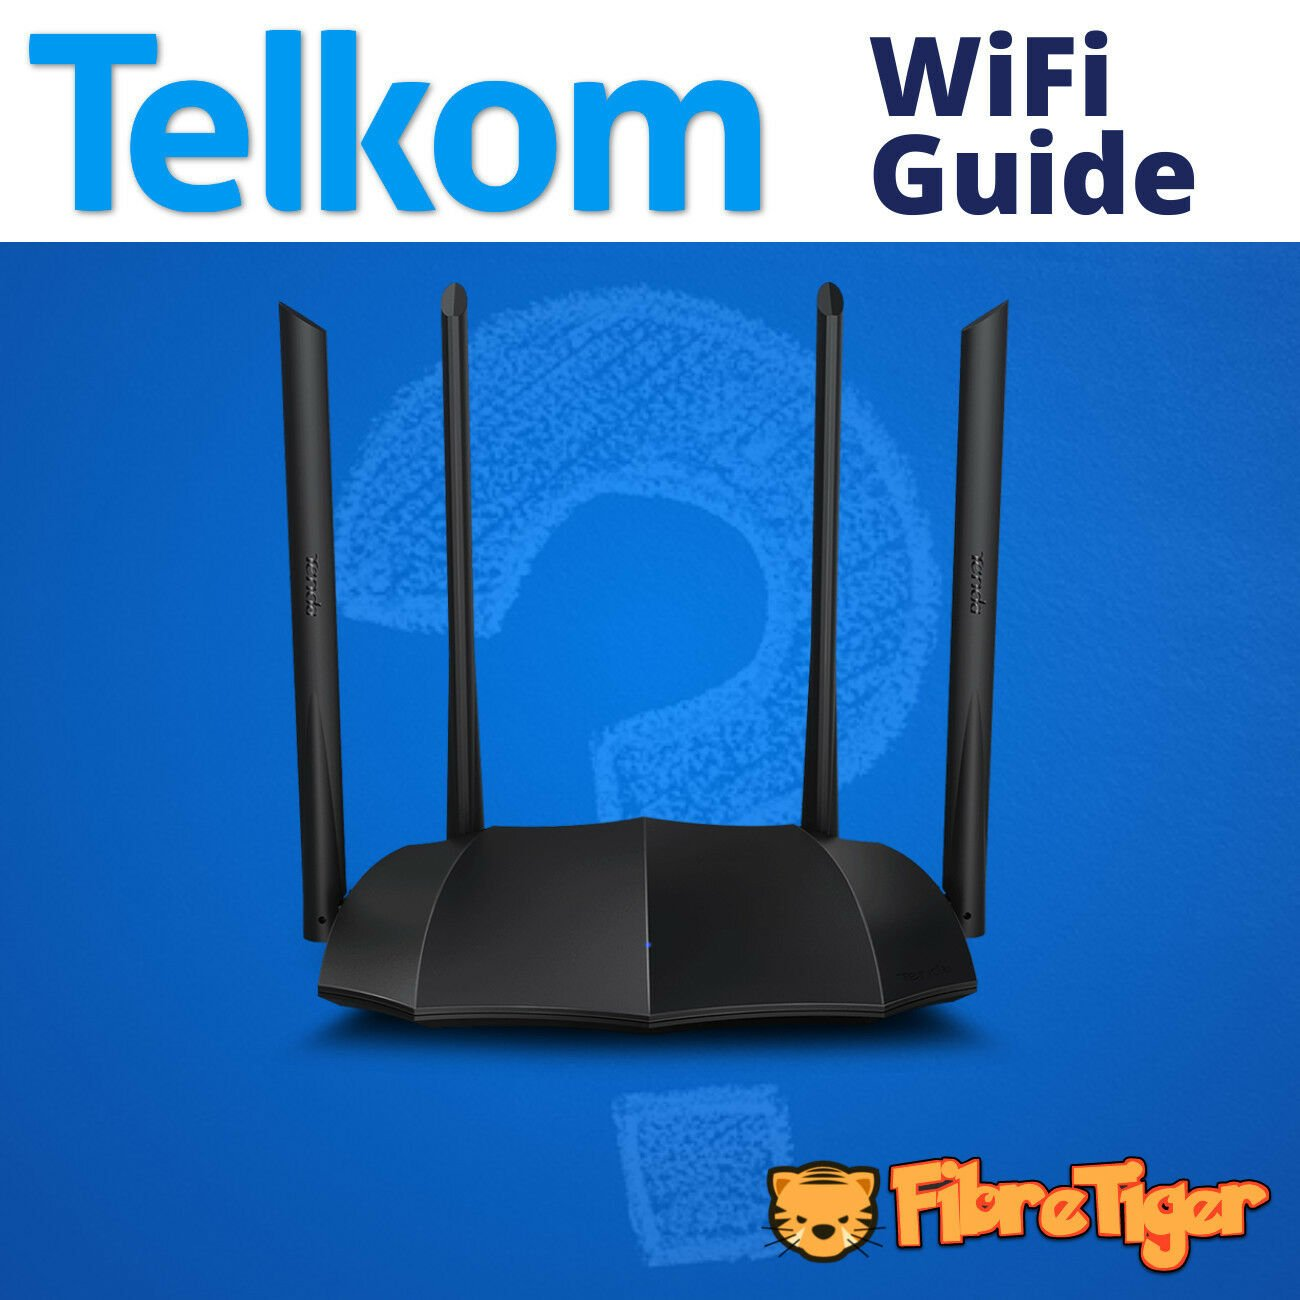 Telkom LTE And WiFi - The Buying Guide And FAQ